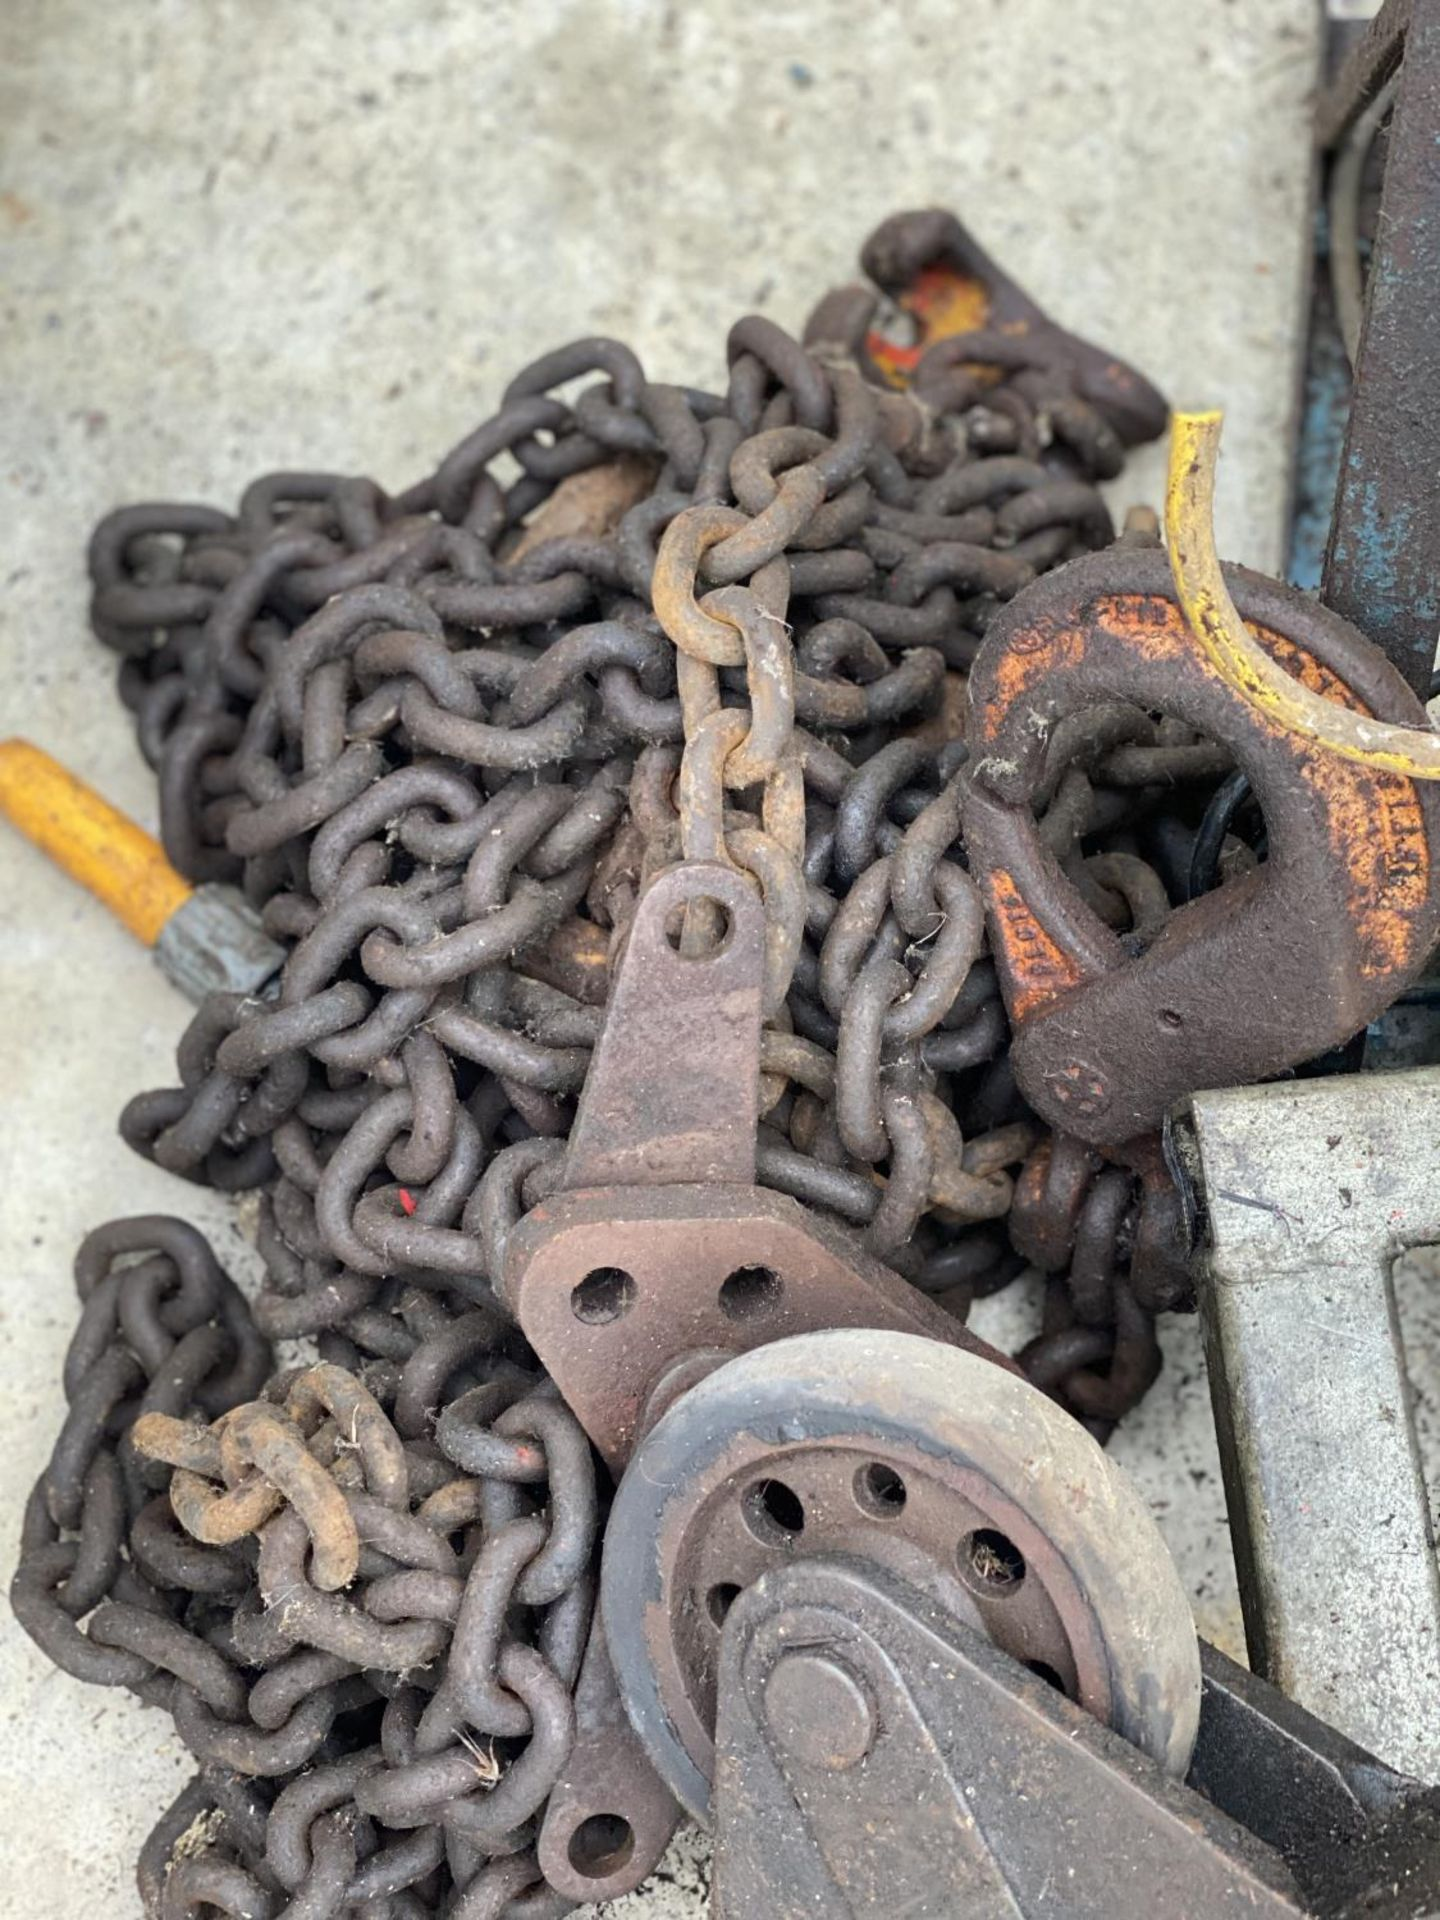 A TOW CHAIN, WOODEN TOOL CHEST ETC - N0 VAT - Image 2 of 2